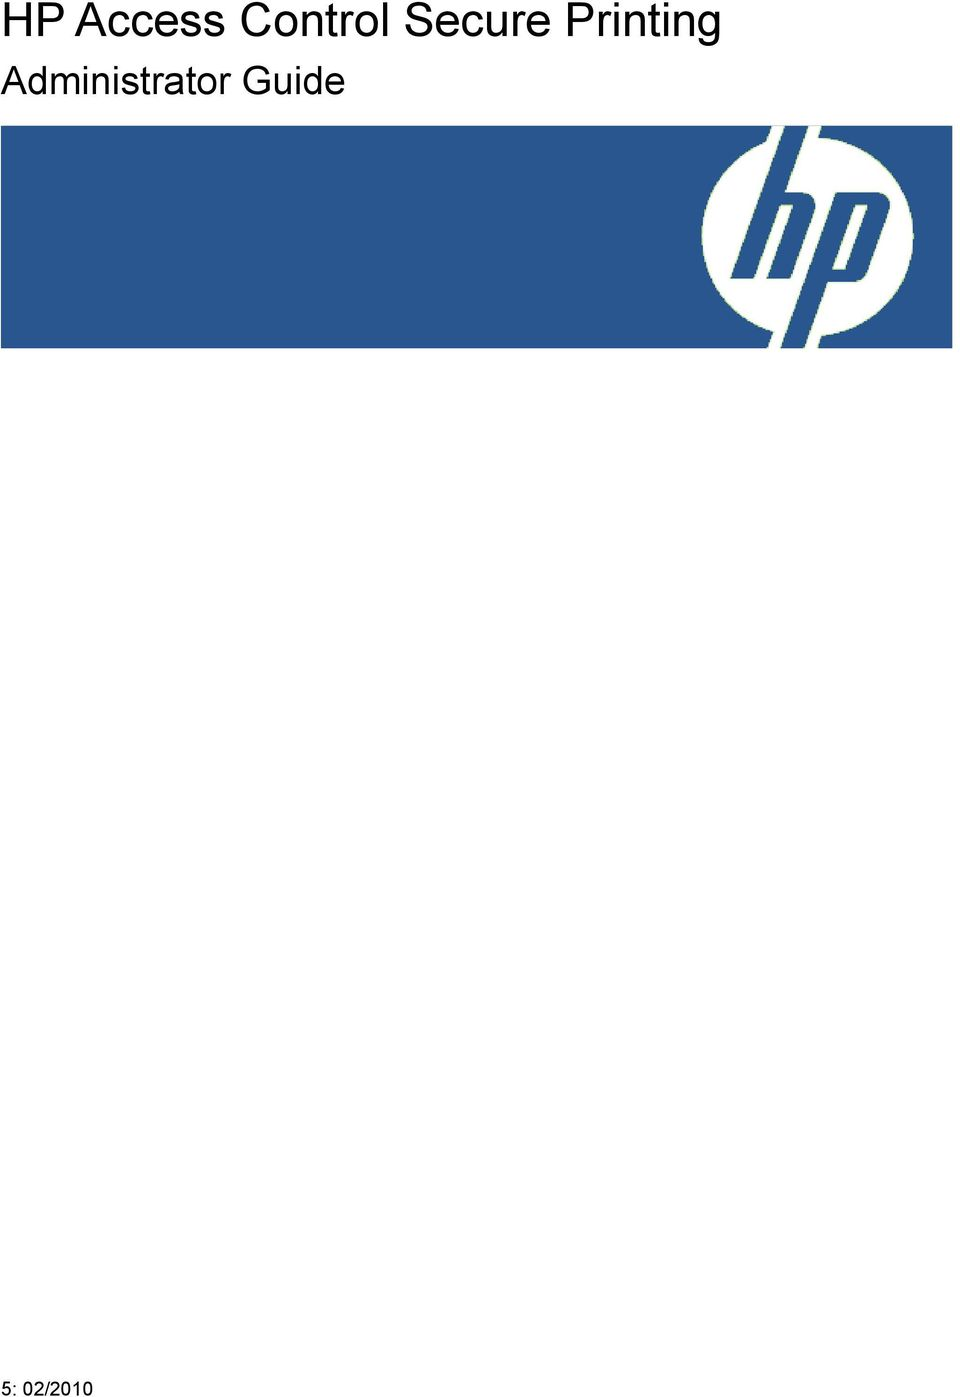 HP Access Control Secure Printing  Administrator Guide - PDF